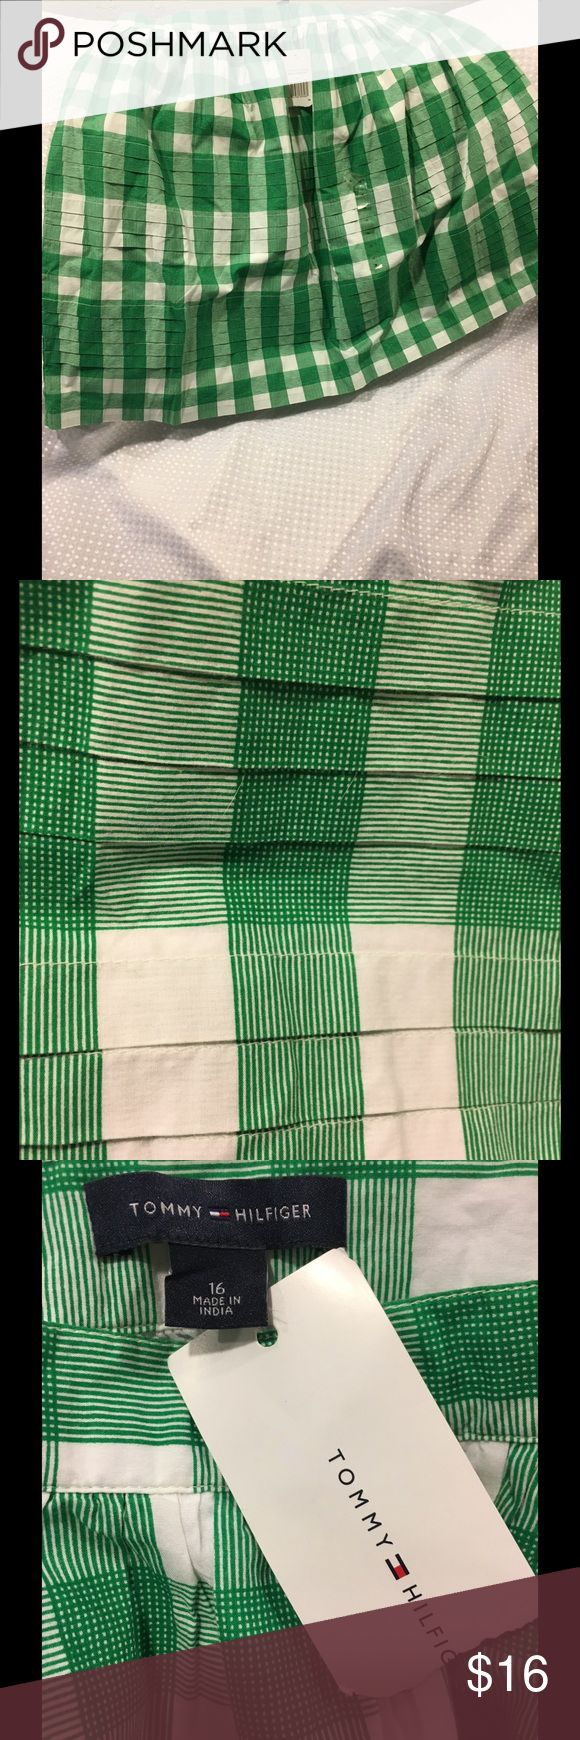 Tommy Hilfiger Skirt Tommy Hilfiger Gingham/Striped like pattern. Color is Kelly Green and White. New with Tags!! Tommy Hilfiger Skirts